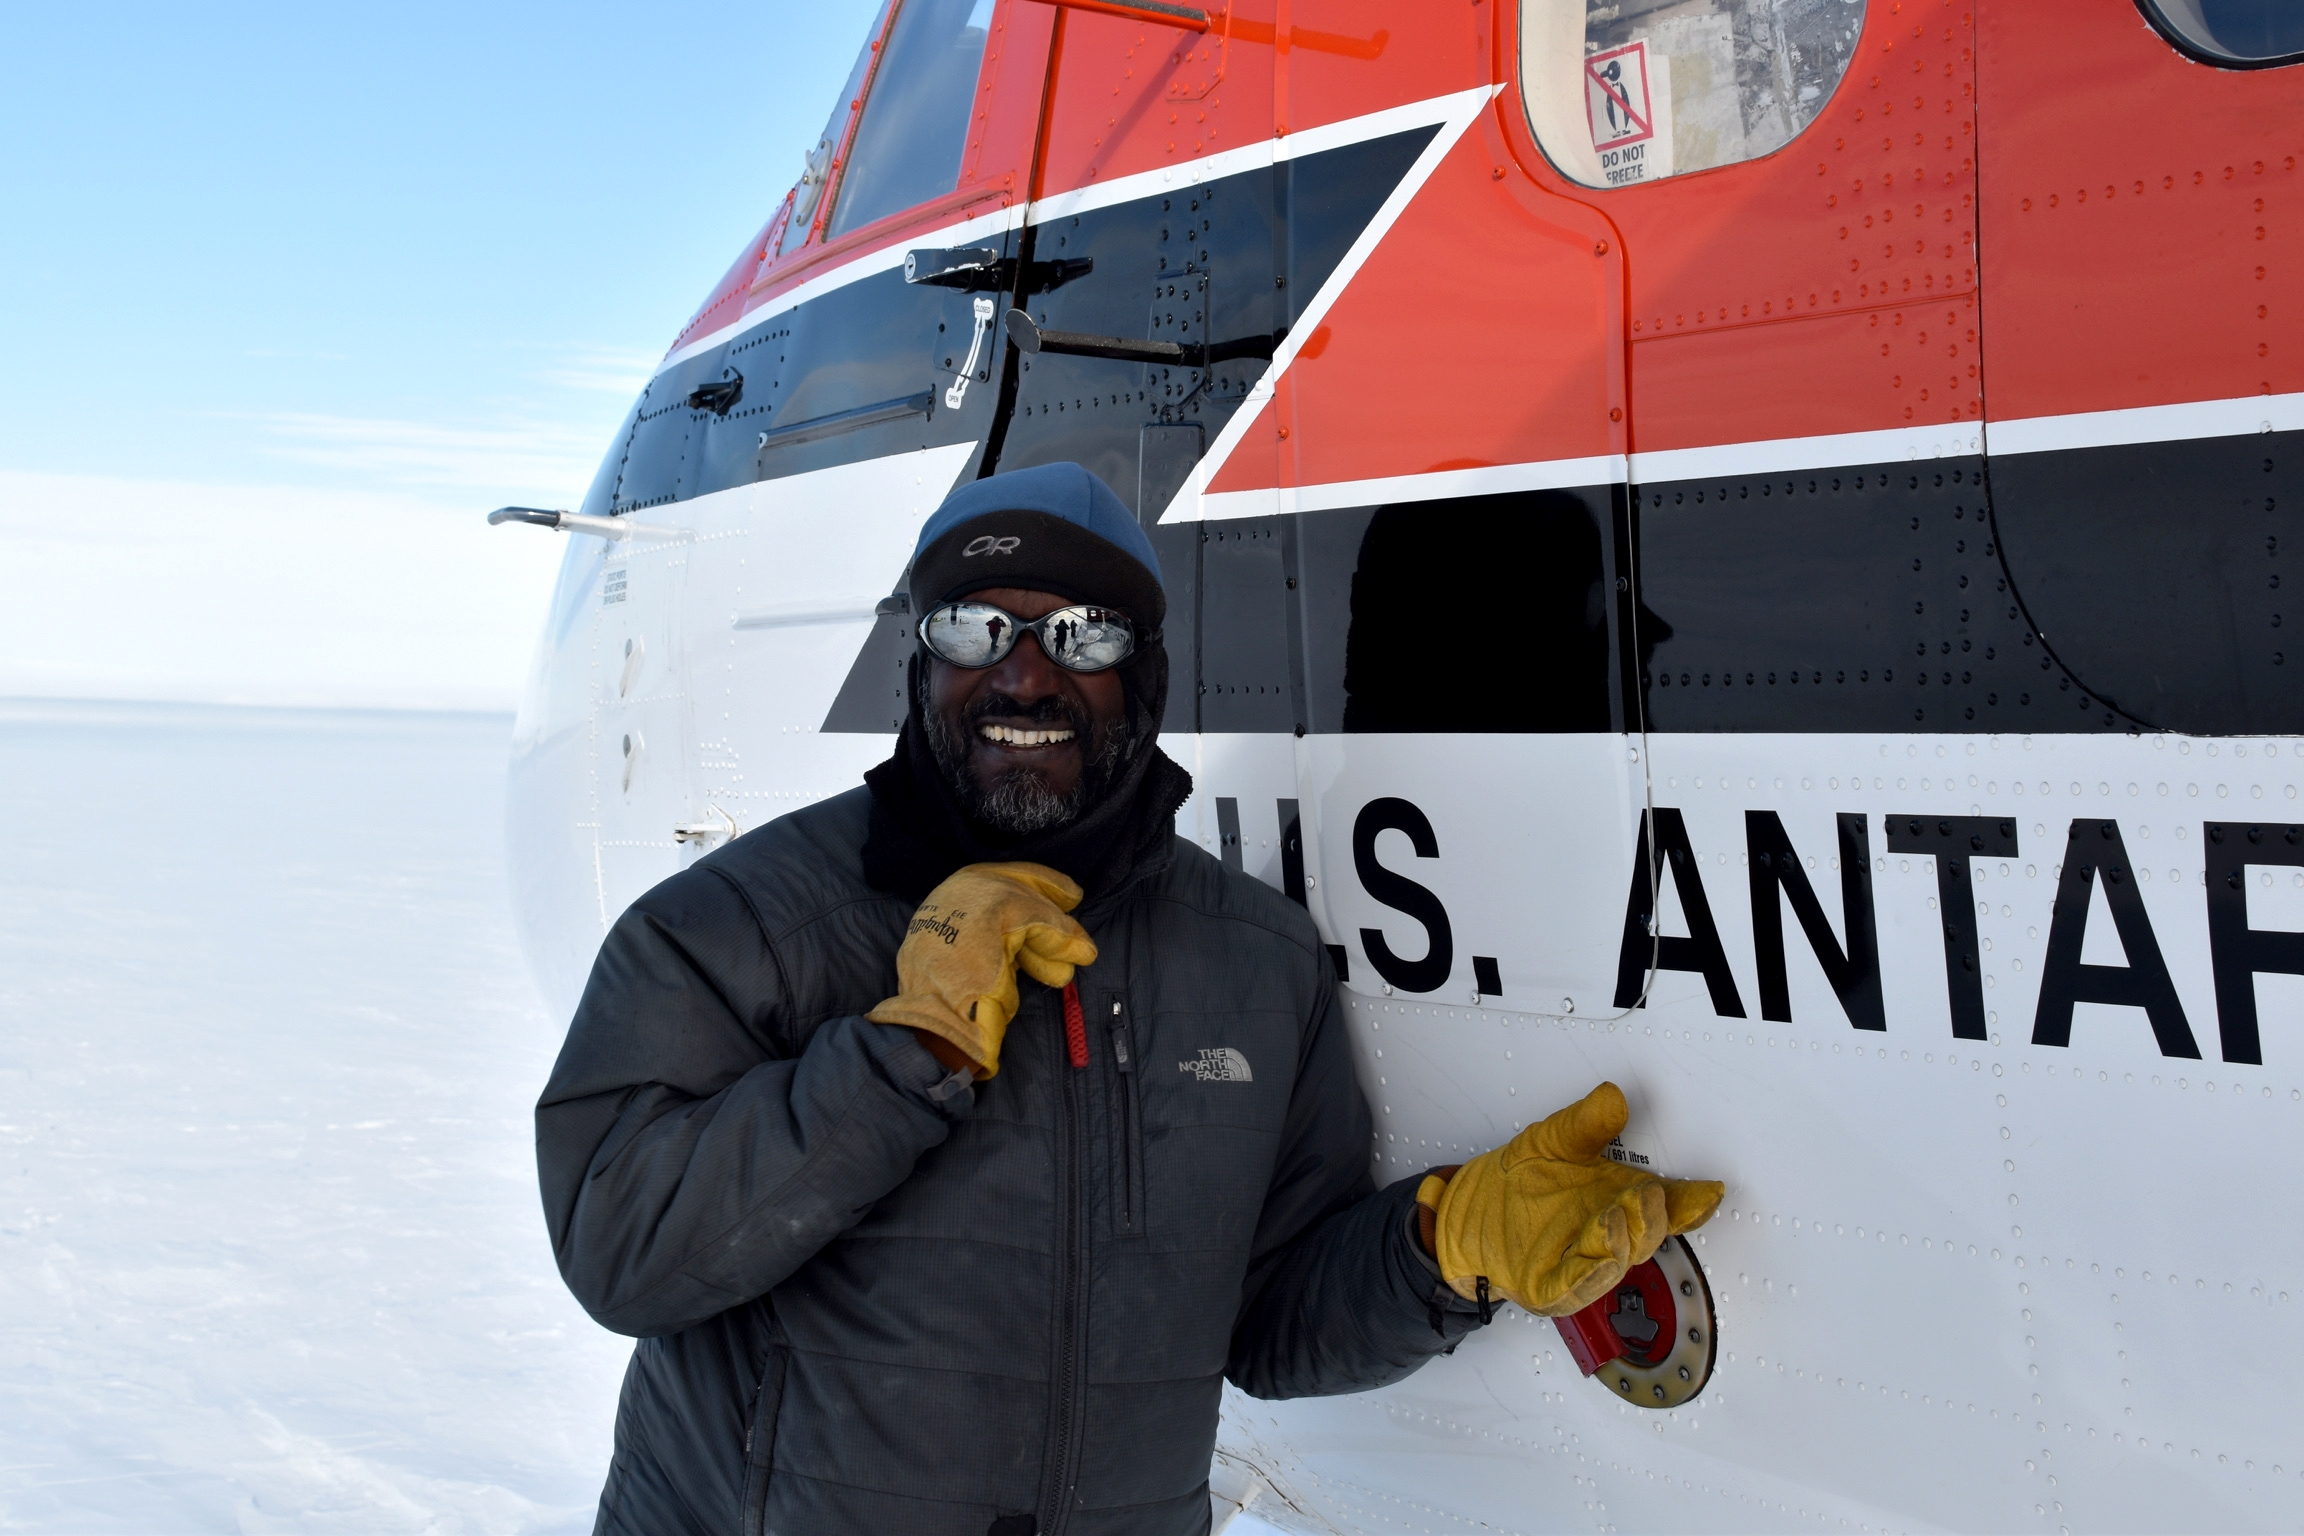 A man smiles in a posed photo in front of a Twin Otter airplane.